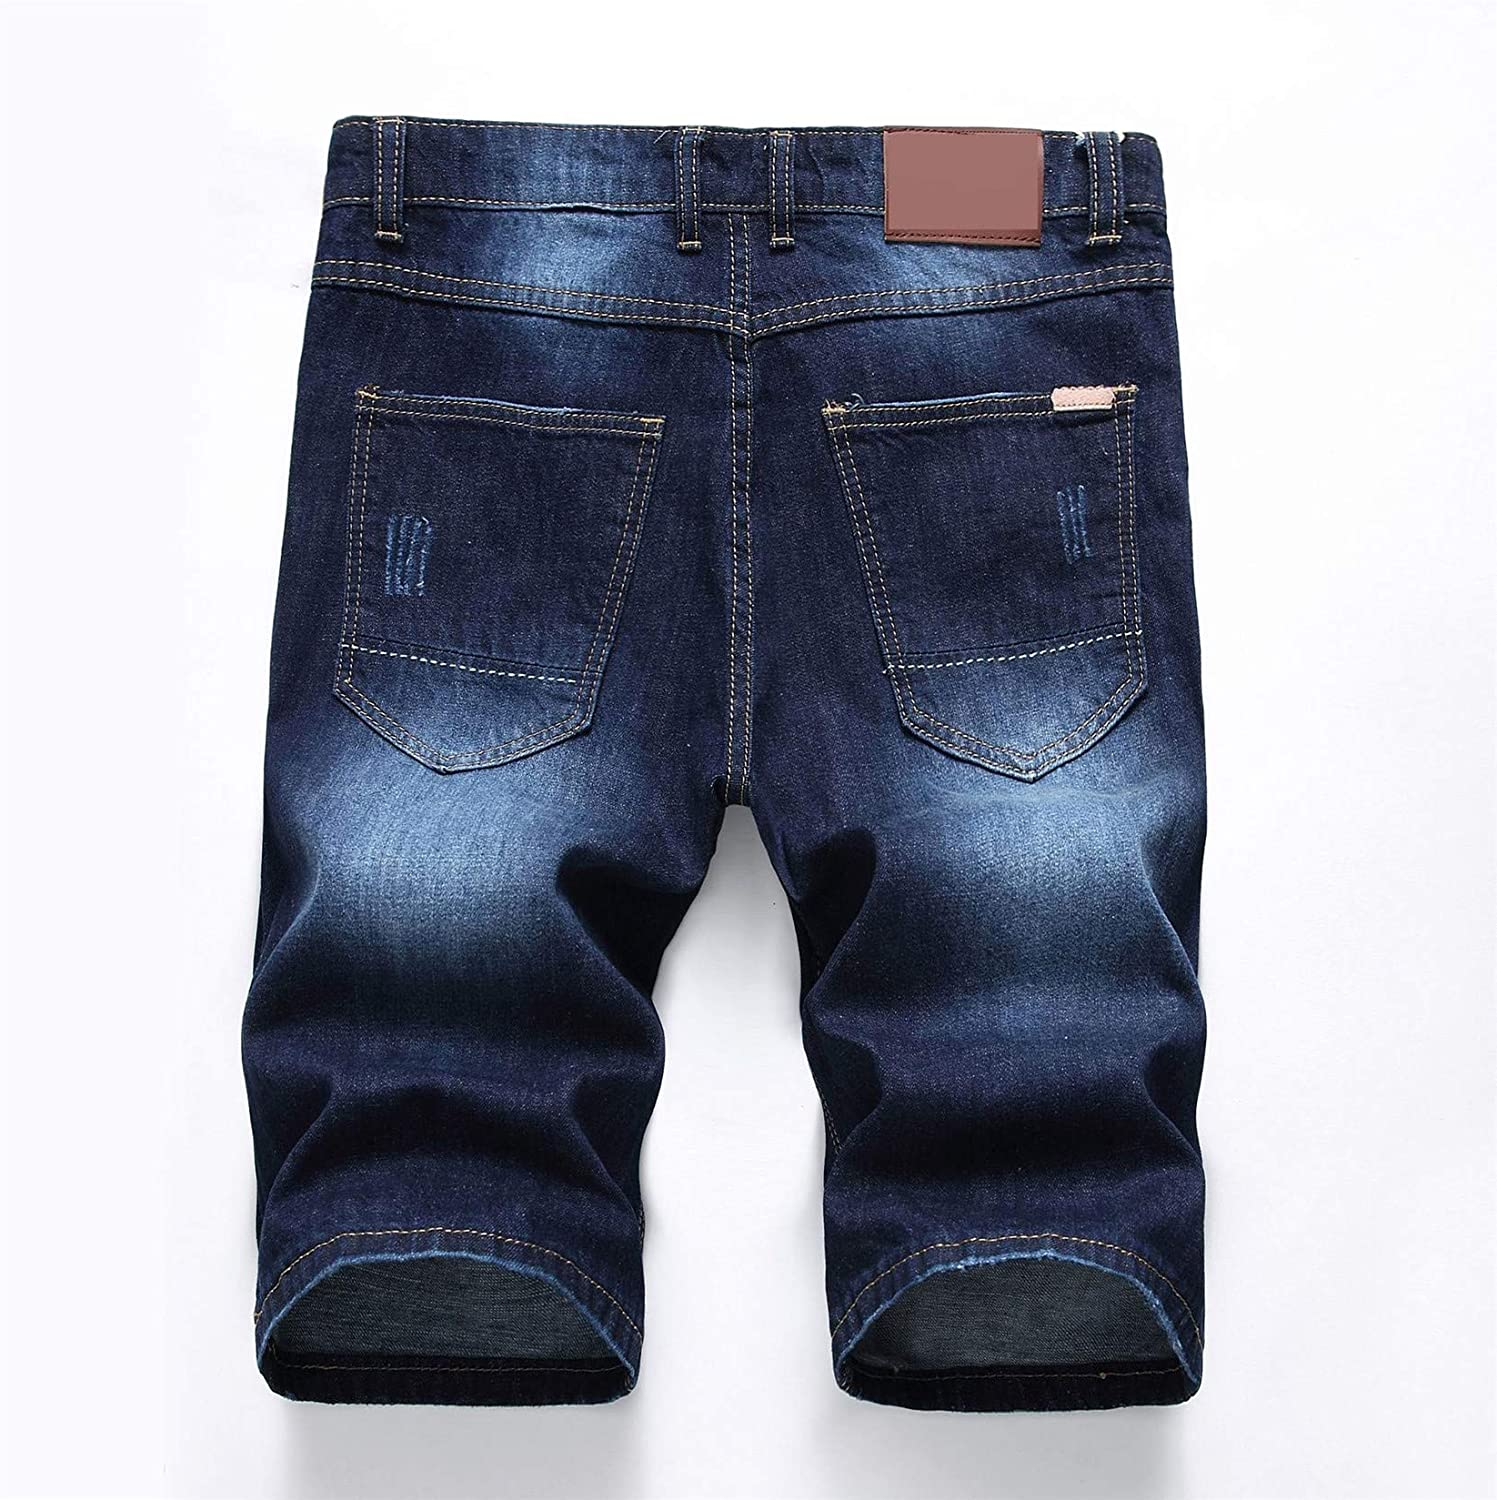 Andongnywell Mens Summer Casual Denim Shorts Distressed Stretchy Jeans Shorts Ripped Straight Short Pants